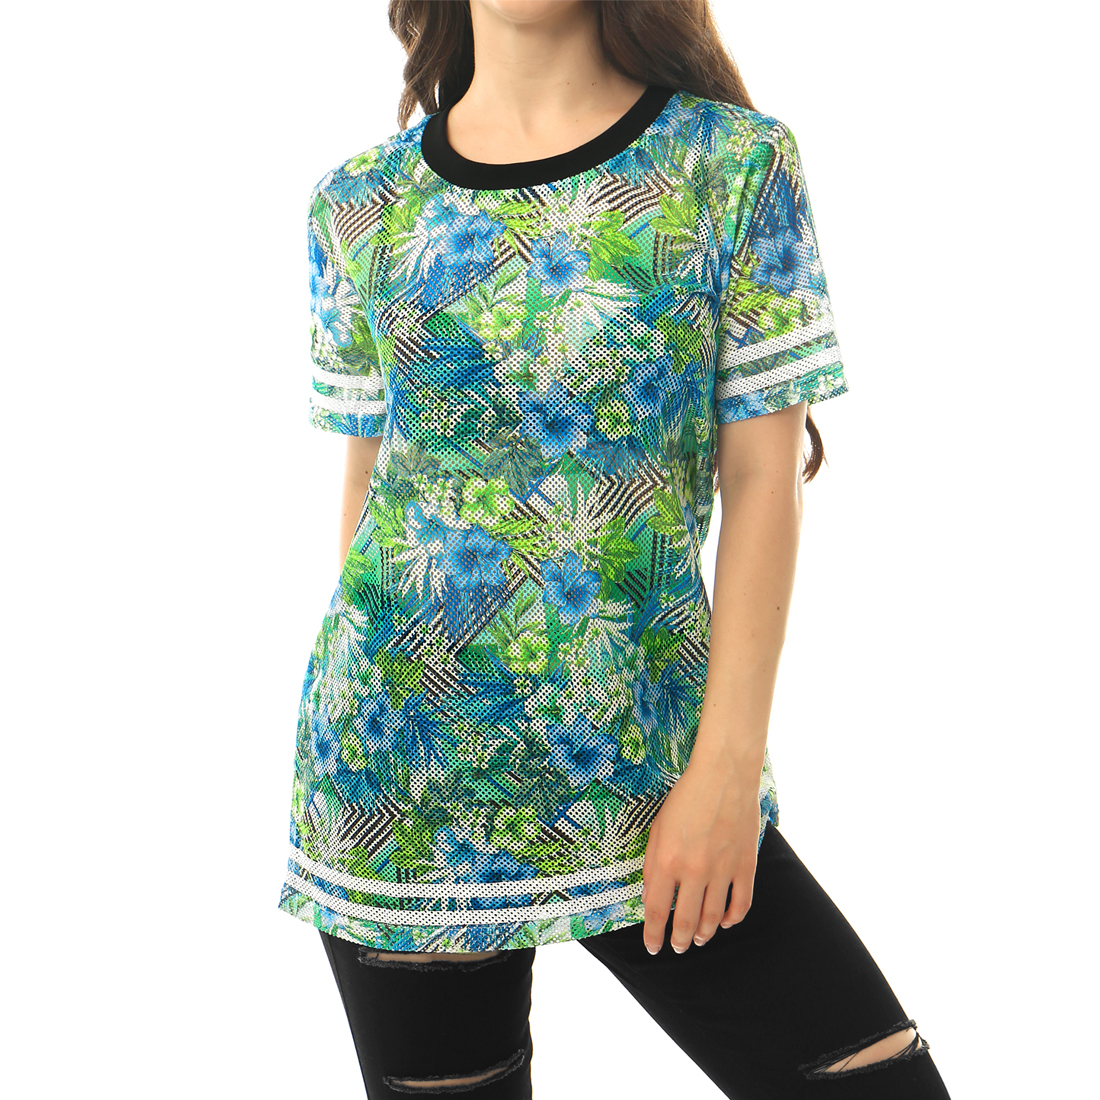 Allegra K Women's Short Sleeves Stripes Trim Floral Mesh Top Blue Green (Size S / 4)